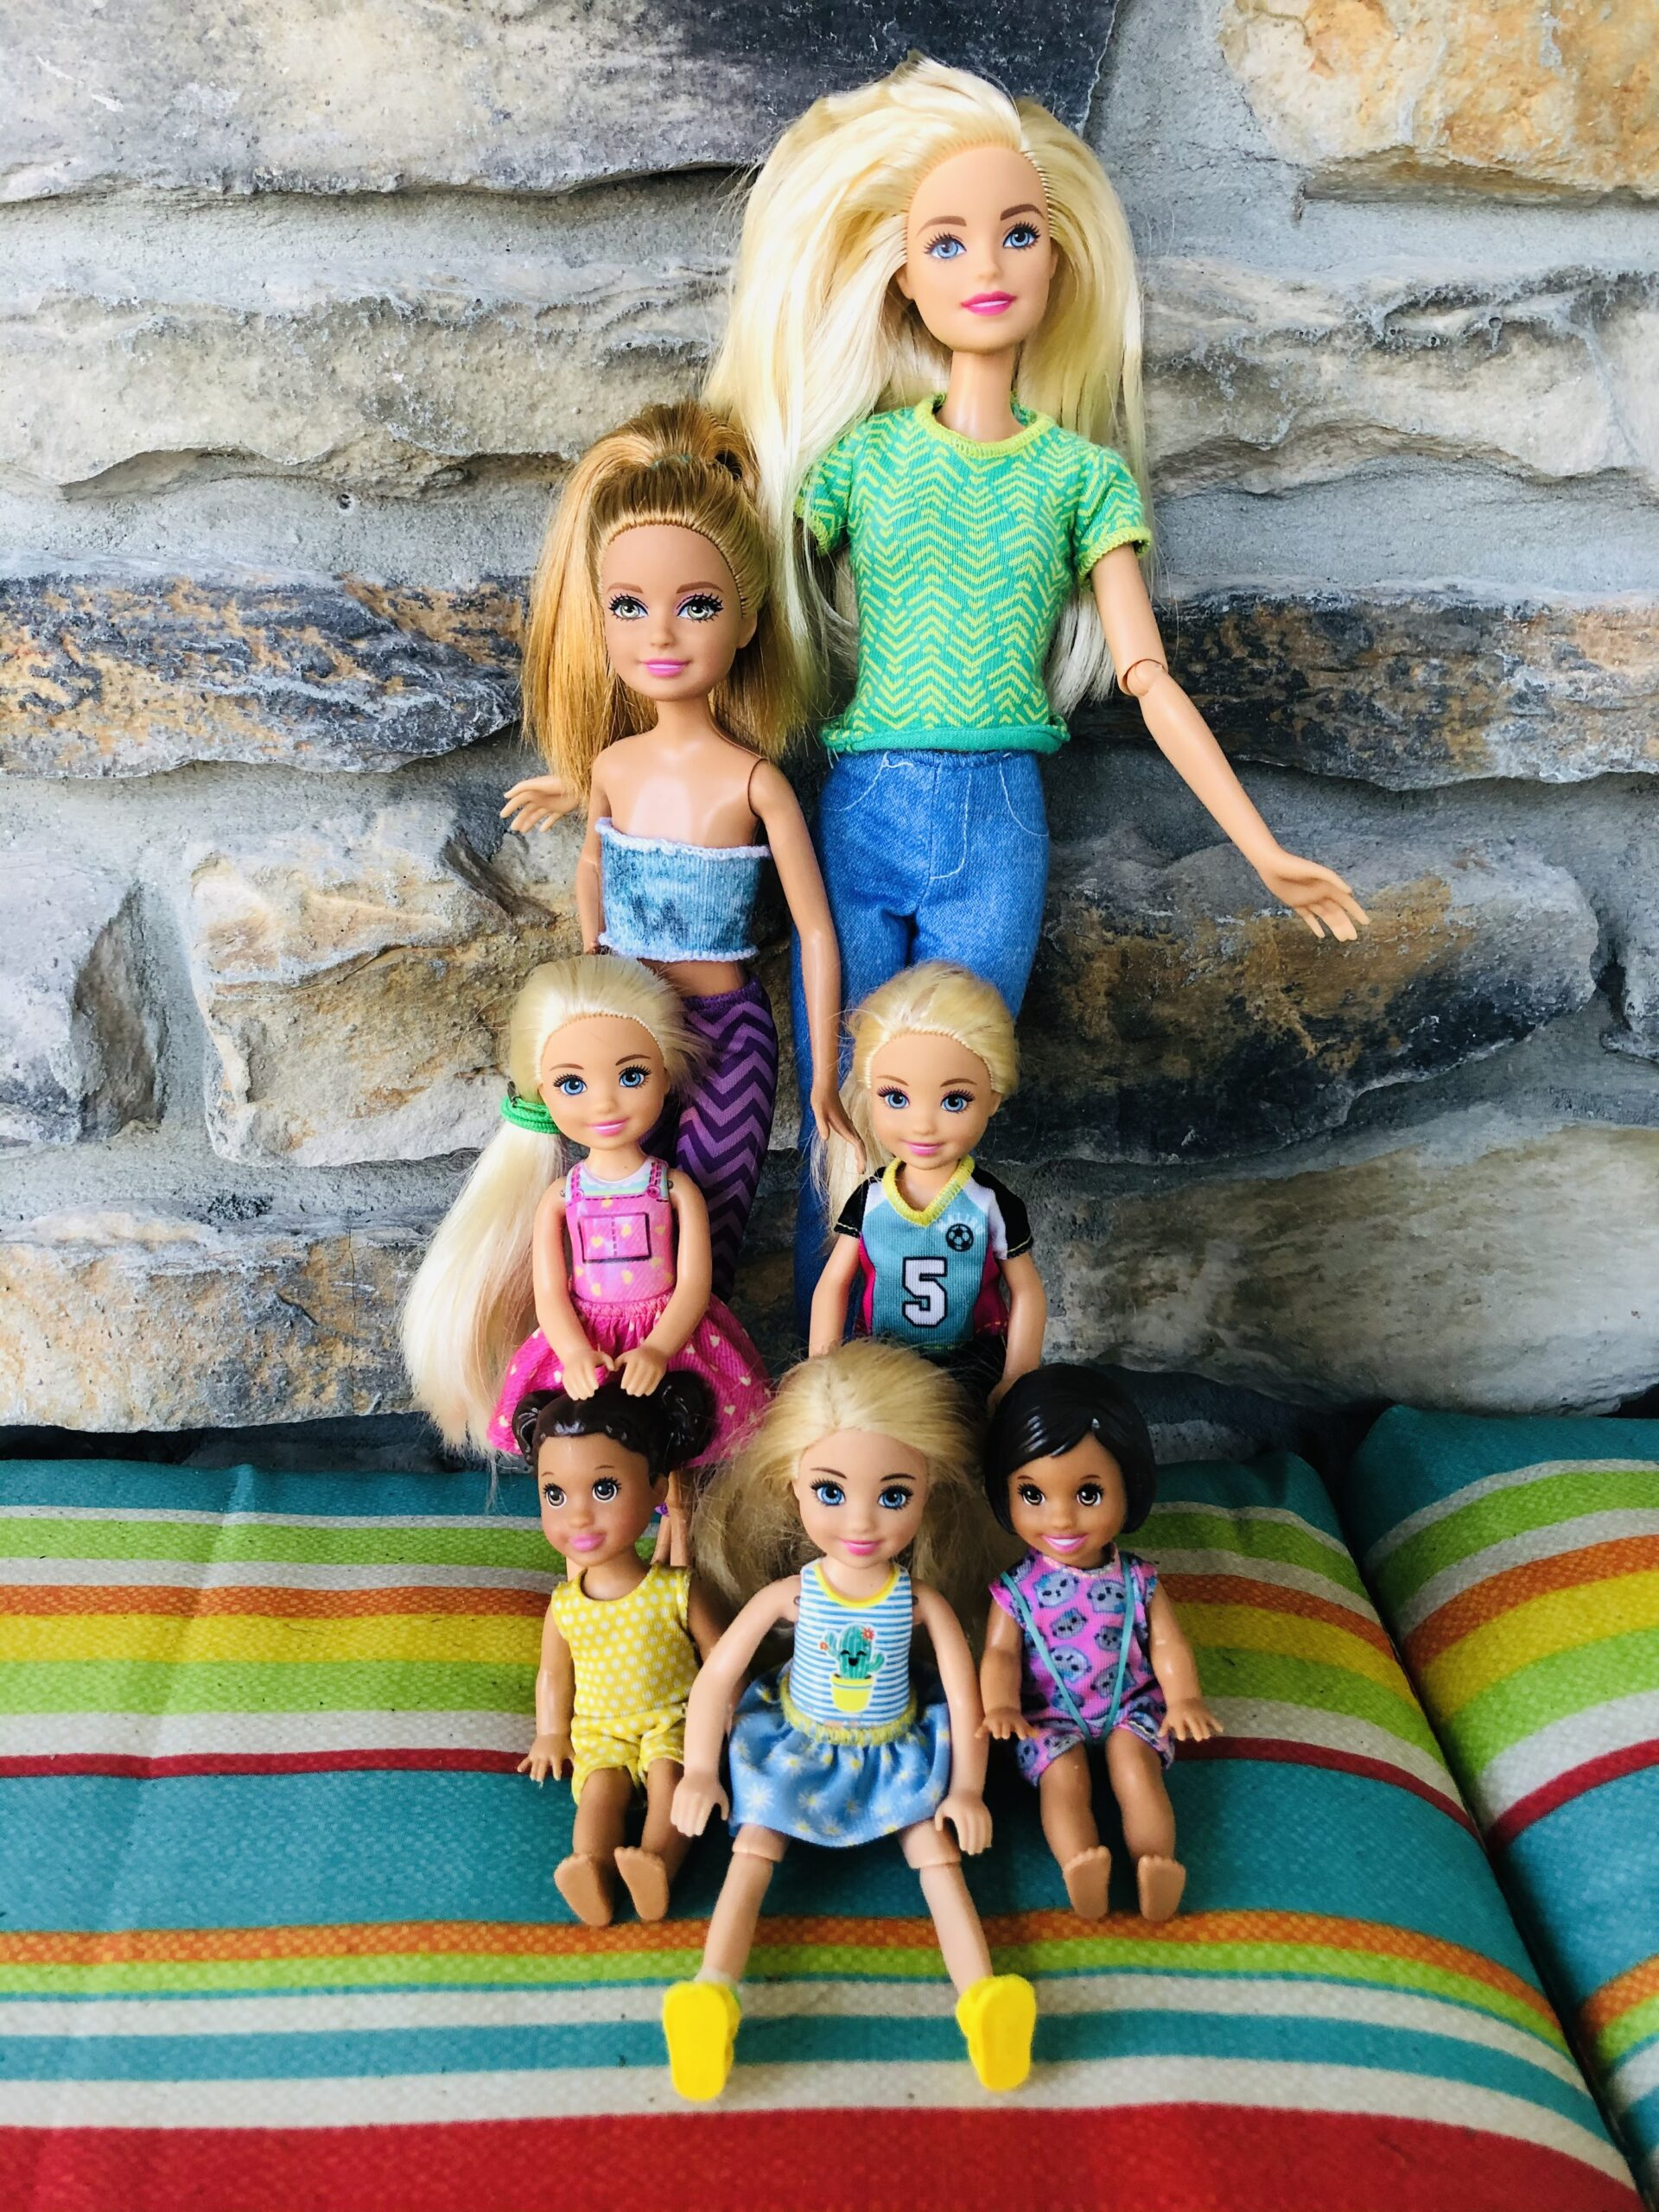 A collection of Barbie Dolls called the Volkswaggon Family.